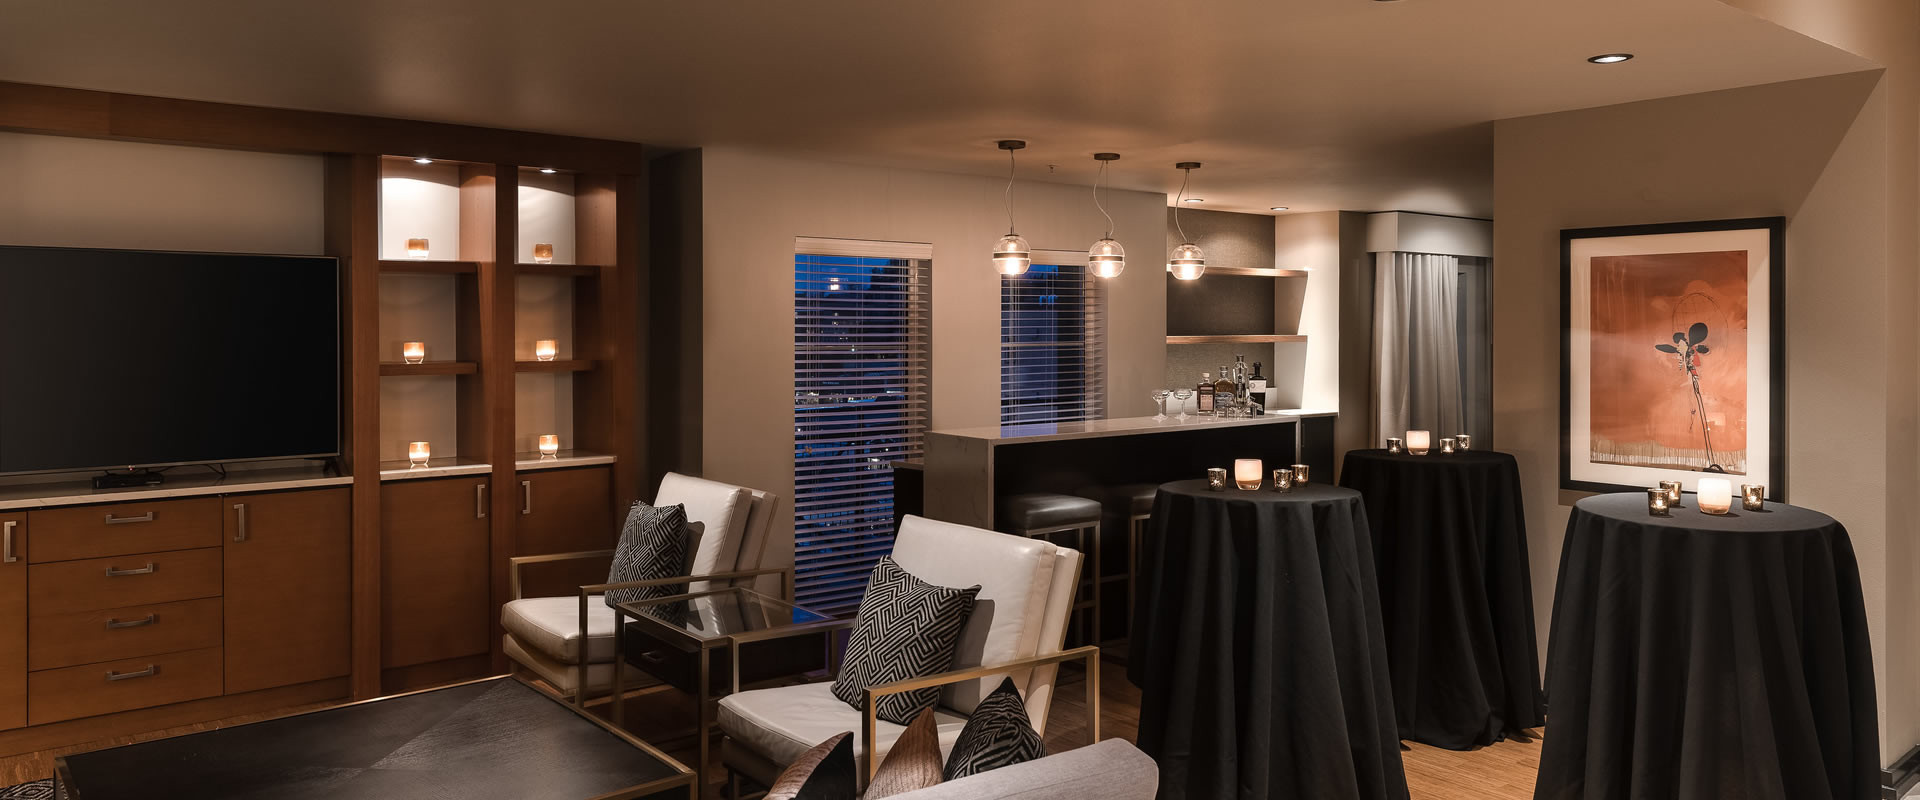 Heathman Suite Reception